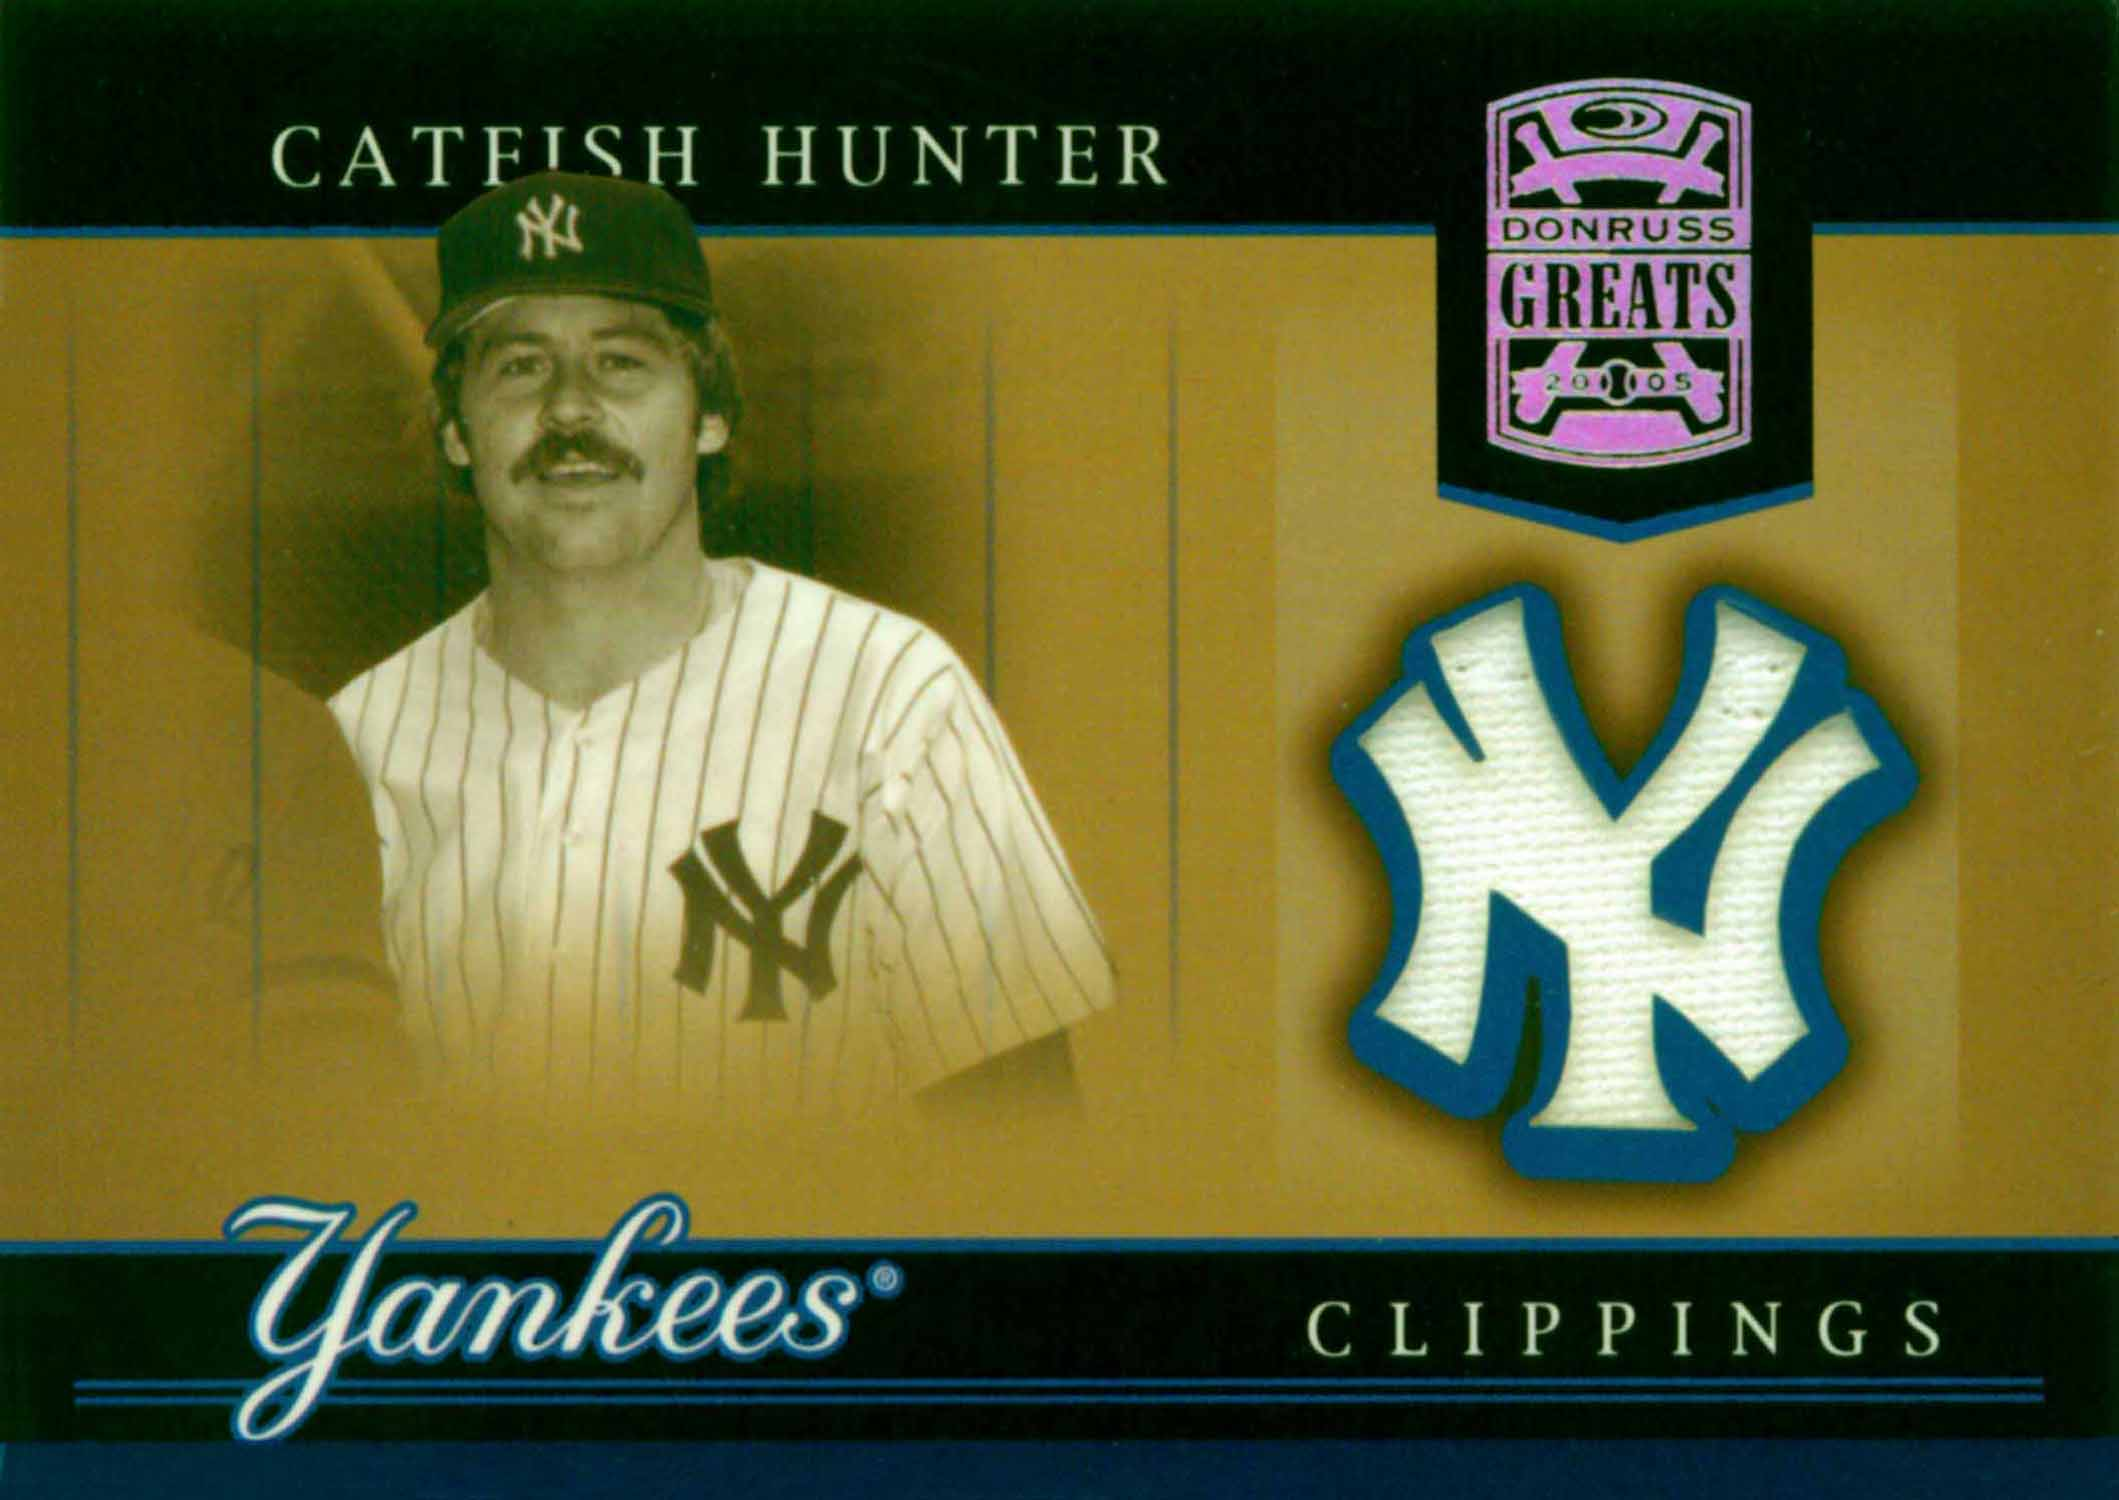 2005 Donruss Greats Yankee Clippings Material Jersey